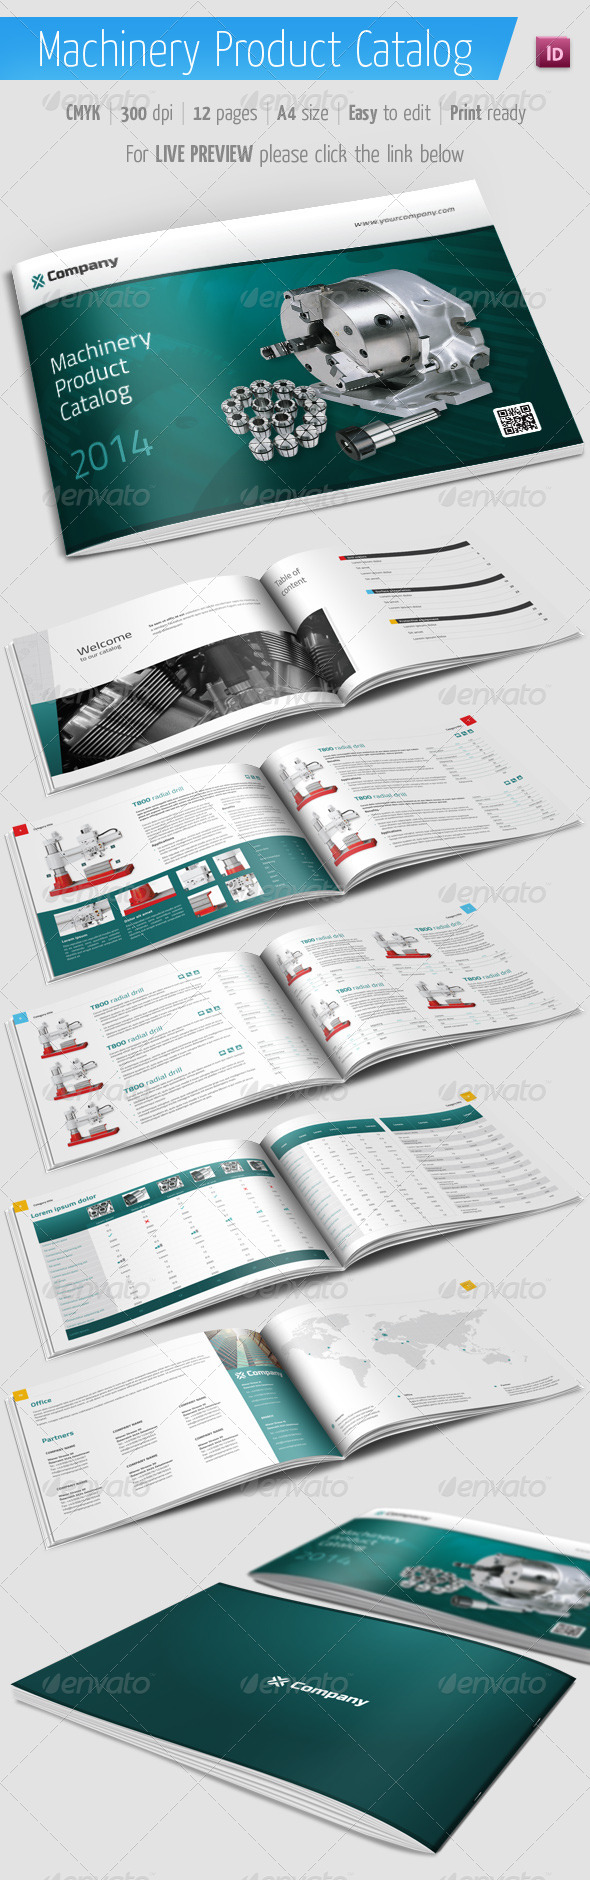 GraphicRiver Product Catalog Machinery Brochure 5923054